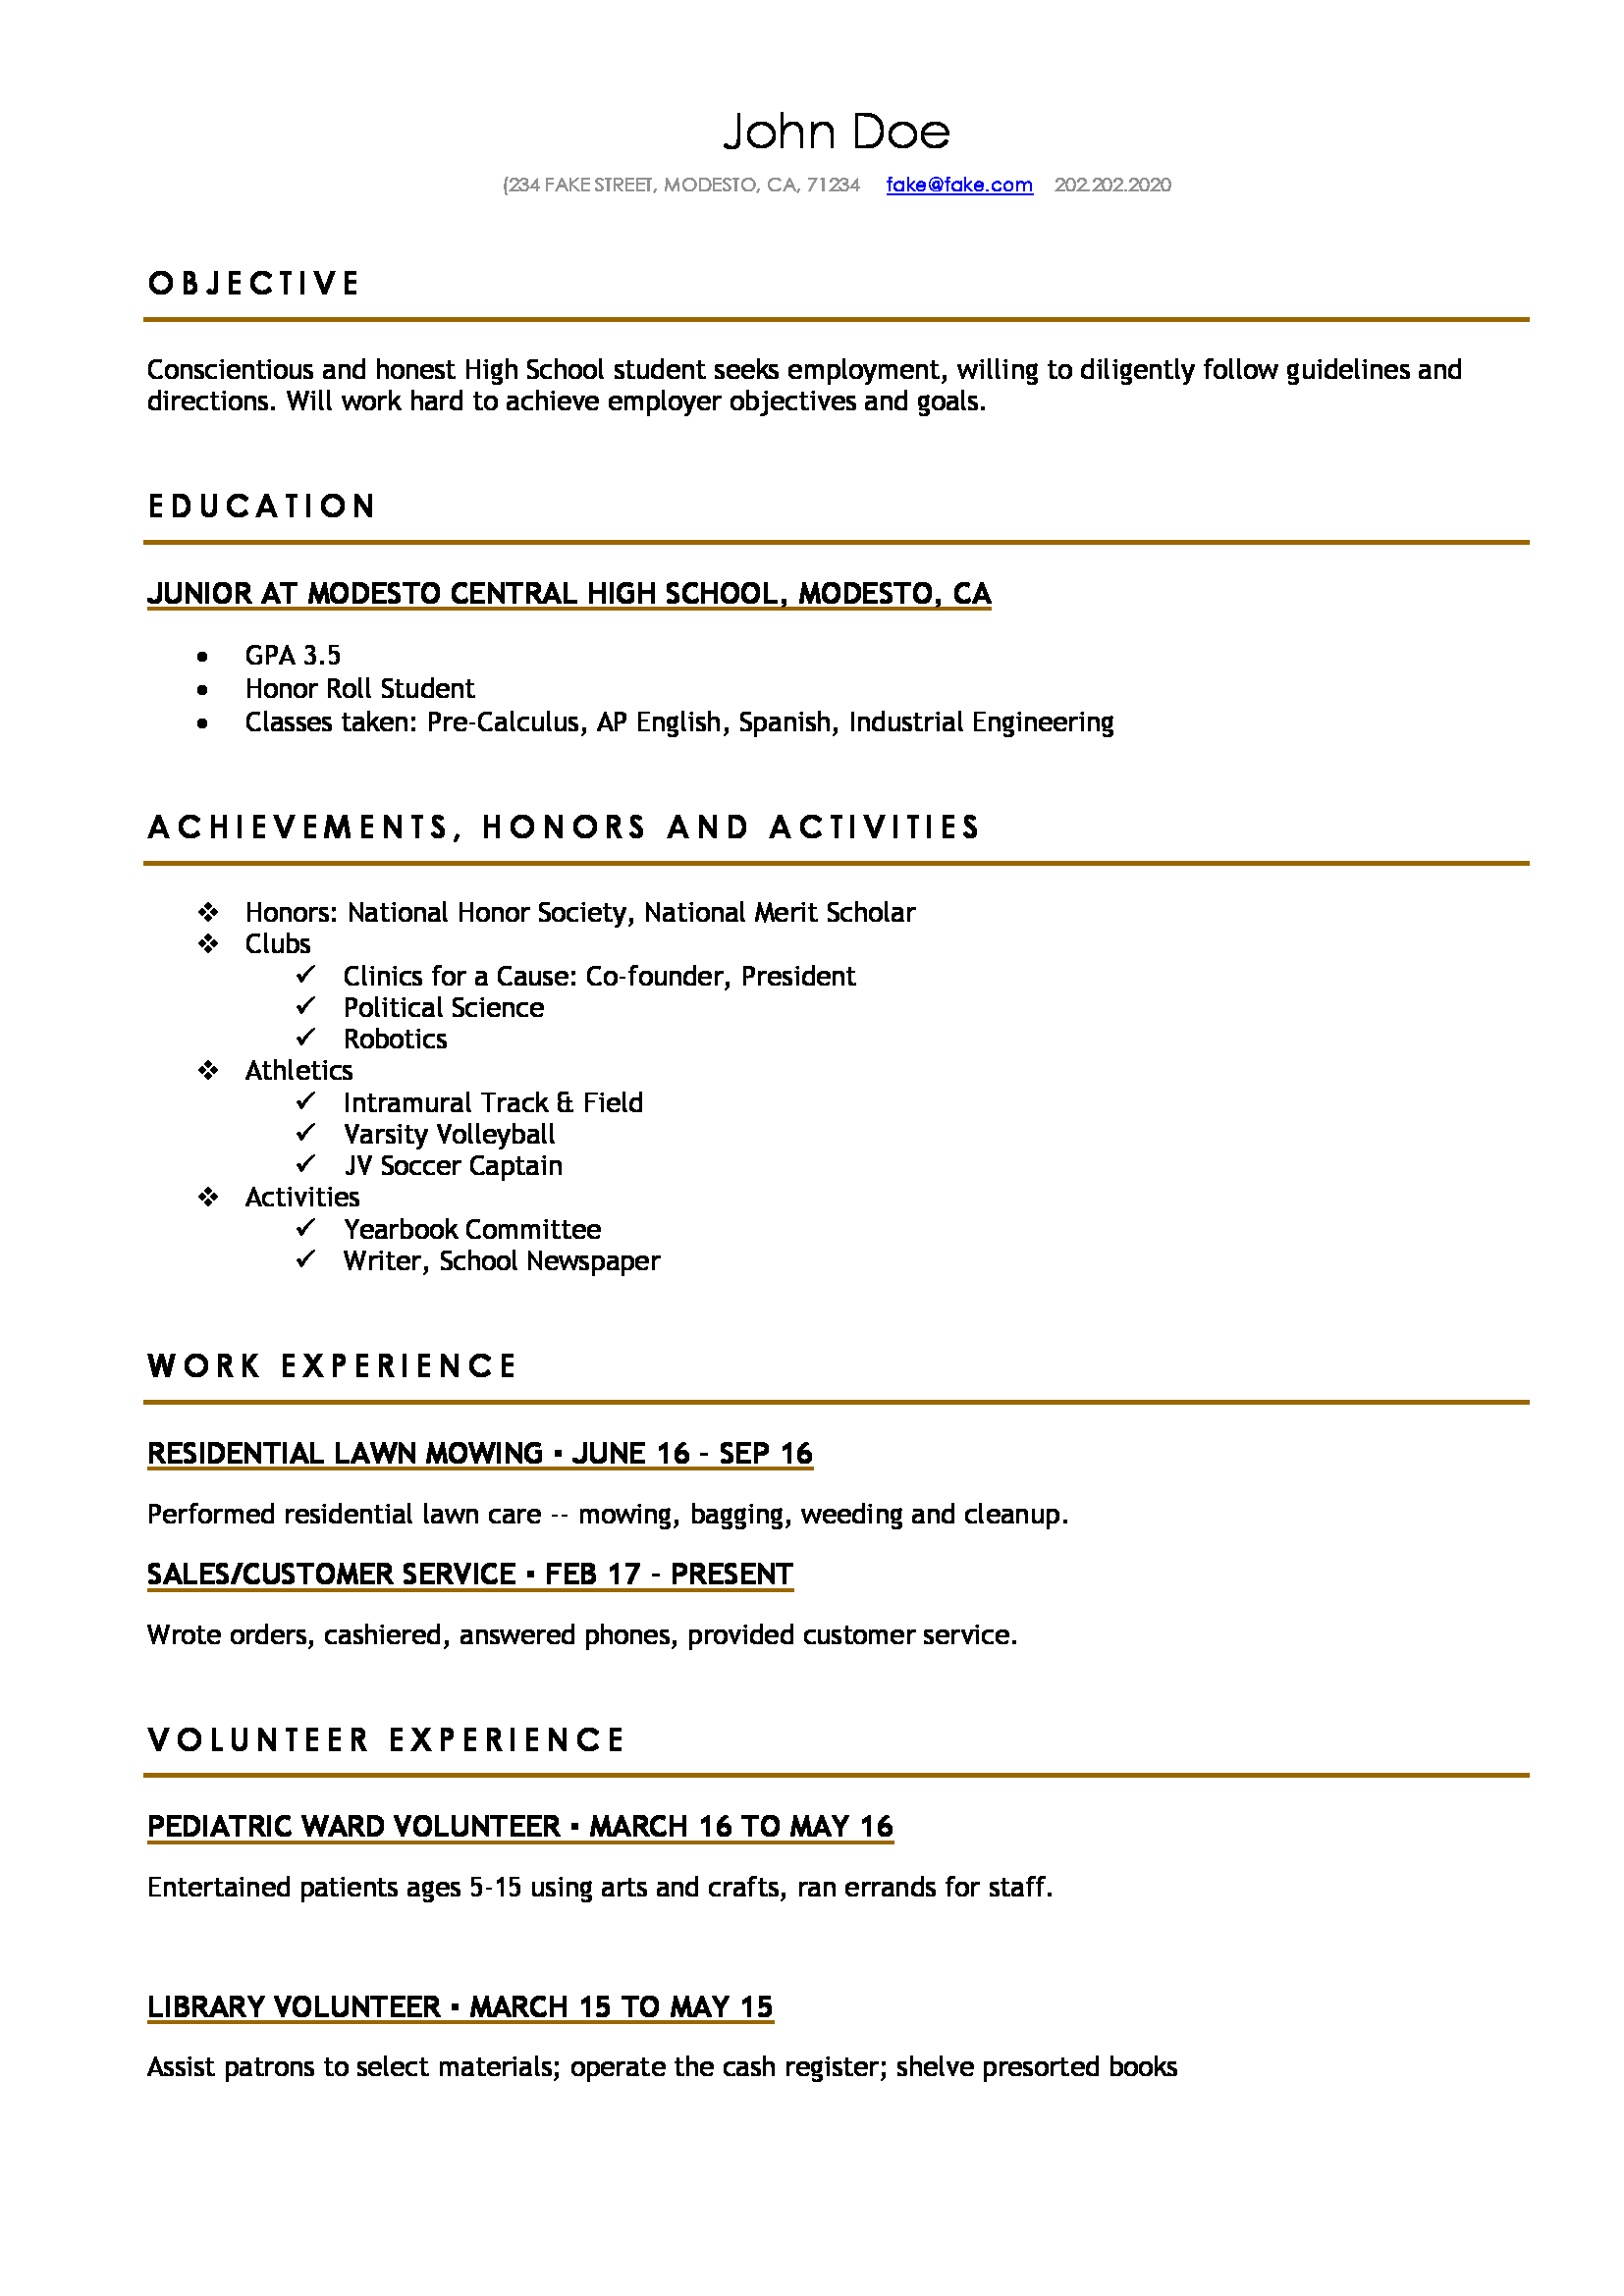 Resume Format For High School Students High School Resume High